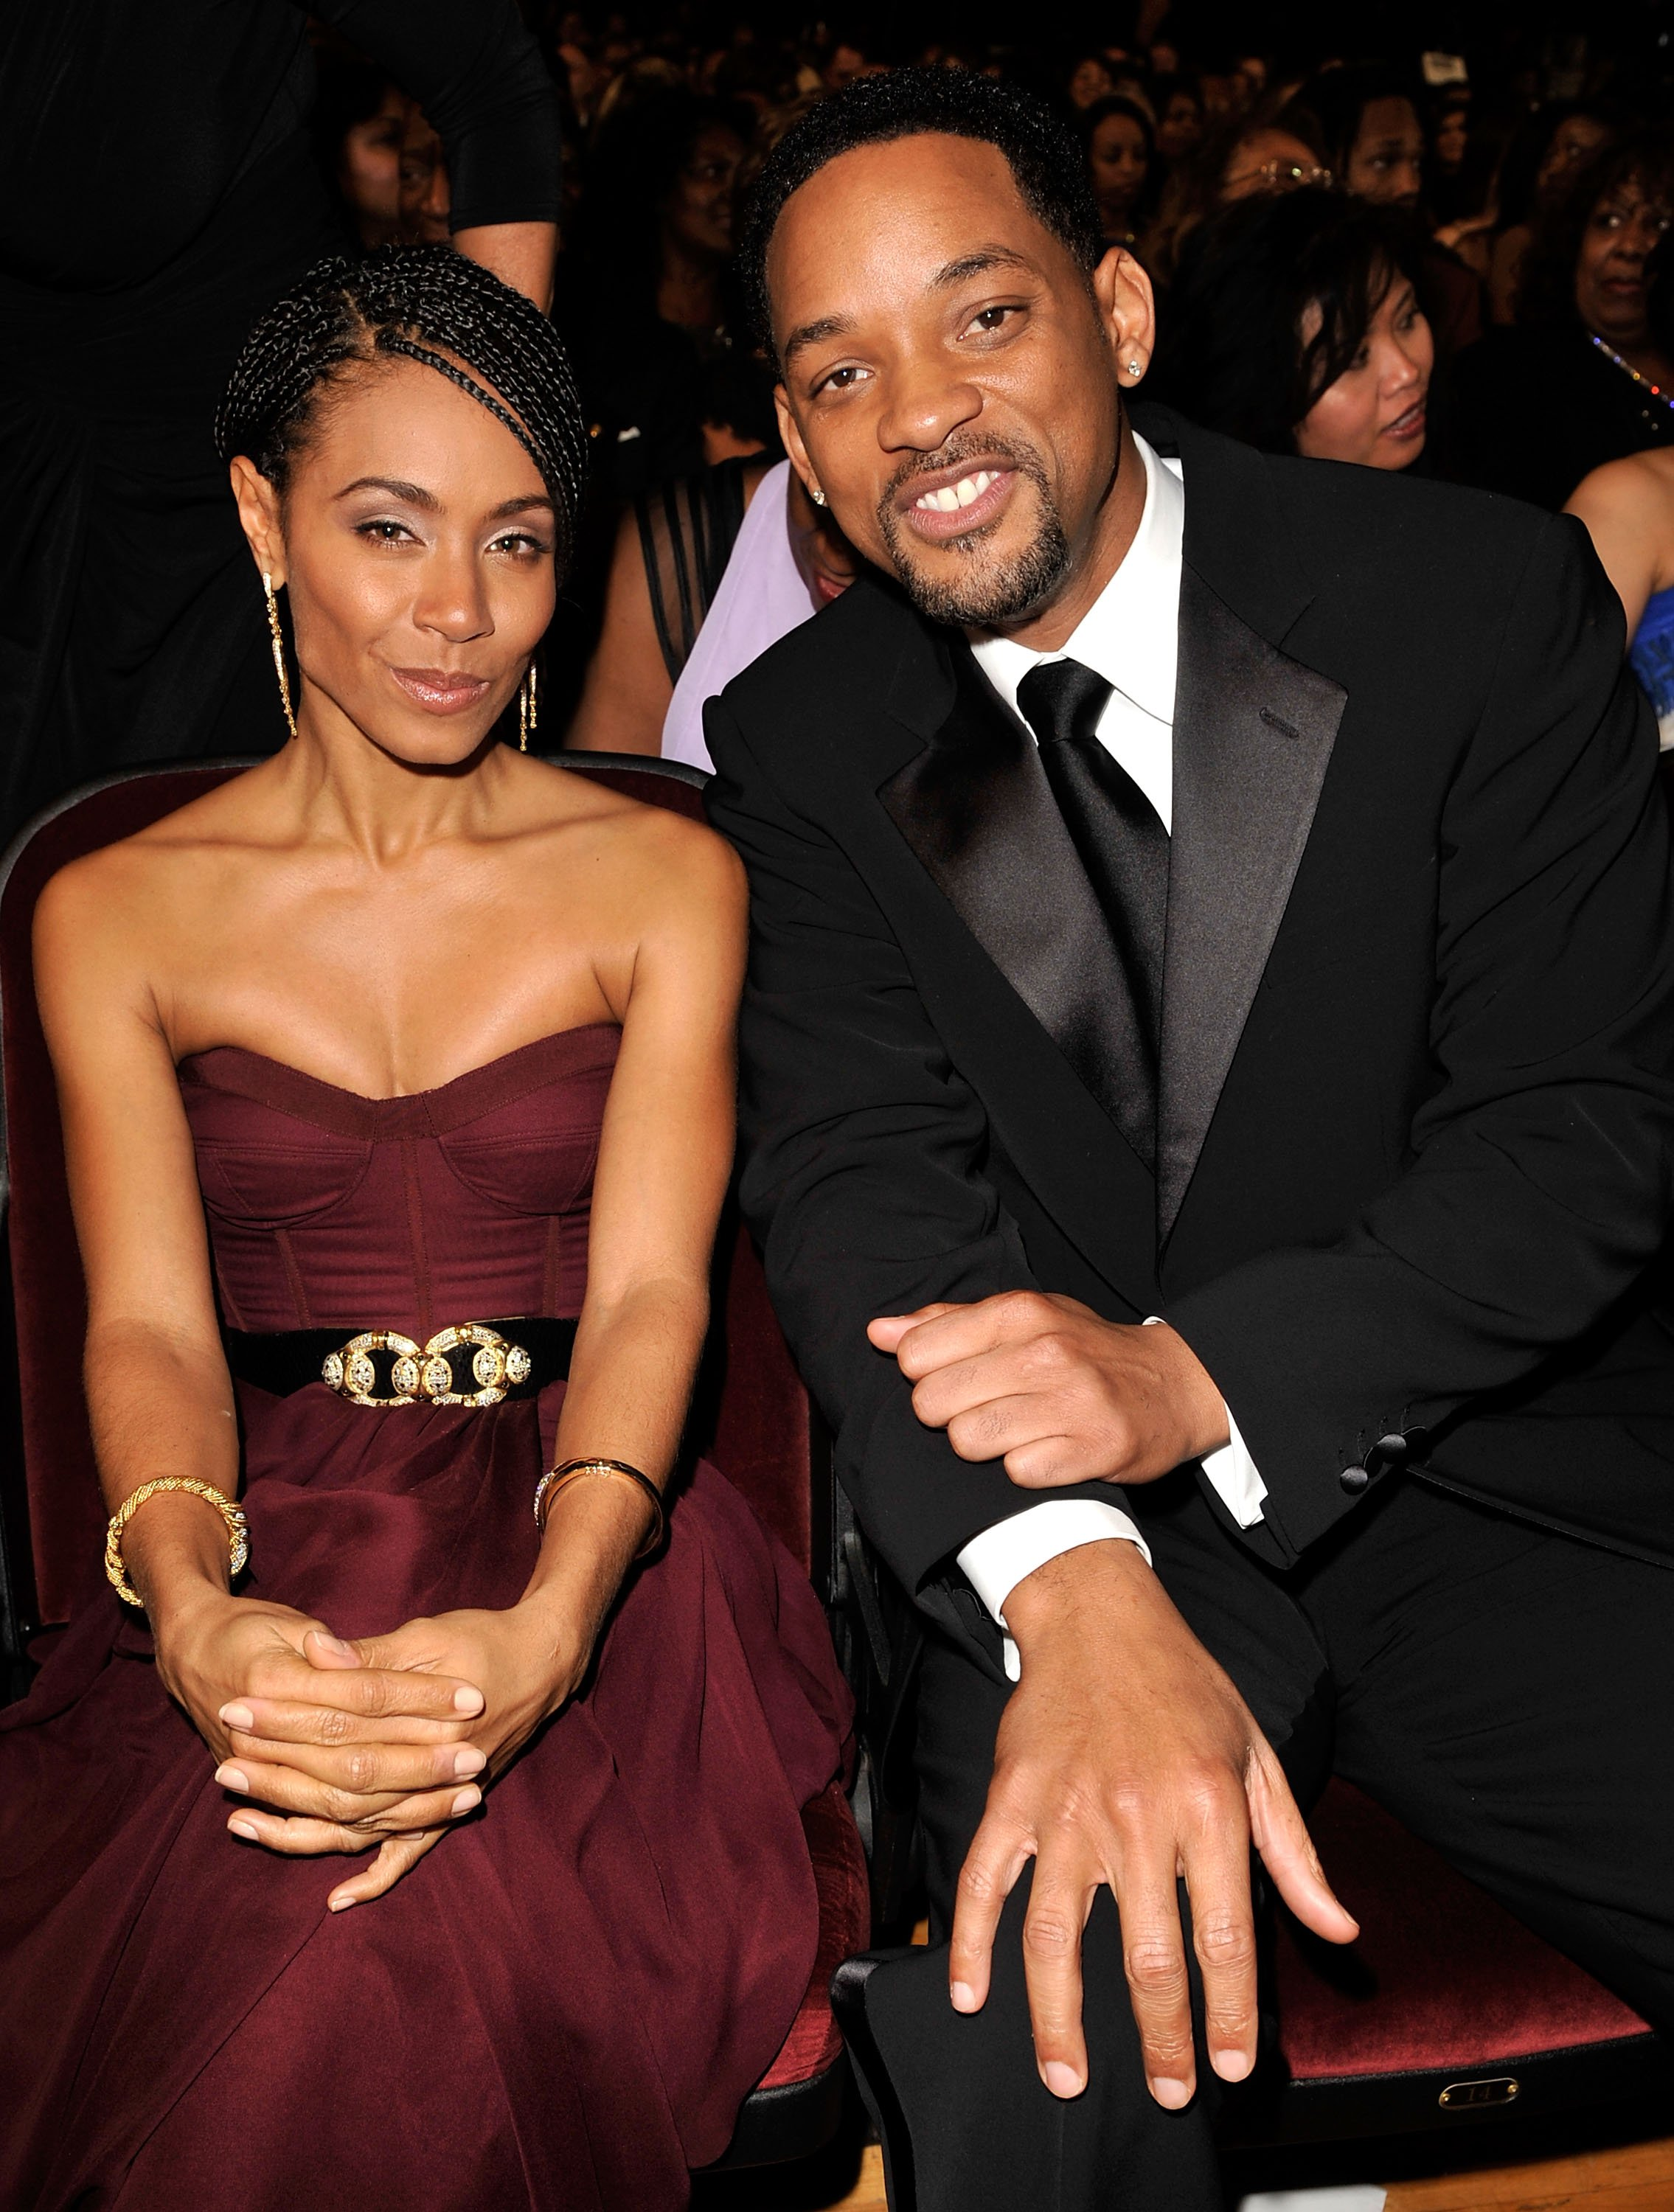 Will Smith and wifew Jada Pinkett-Smith attending the 40th NAACP Image Awards held at the Shrine Auditorium on February 12, 2009 in Los Angeles, California. | Source: Getty